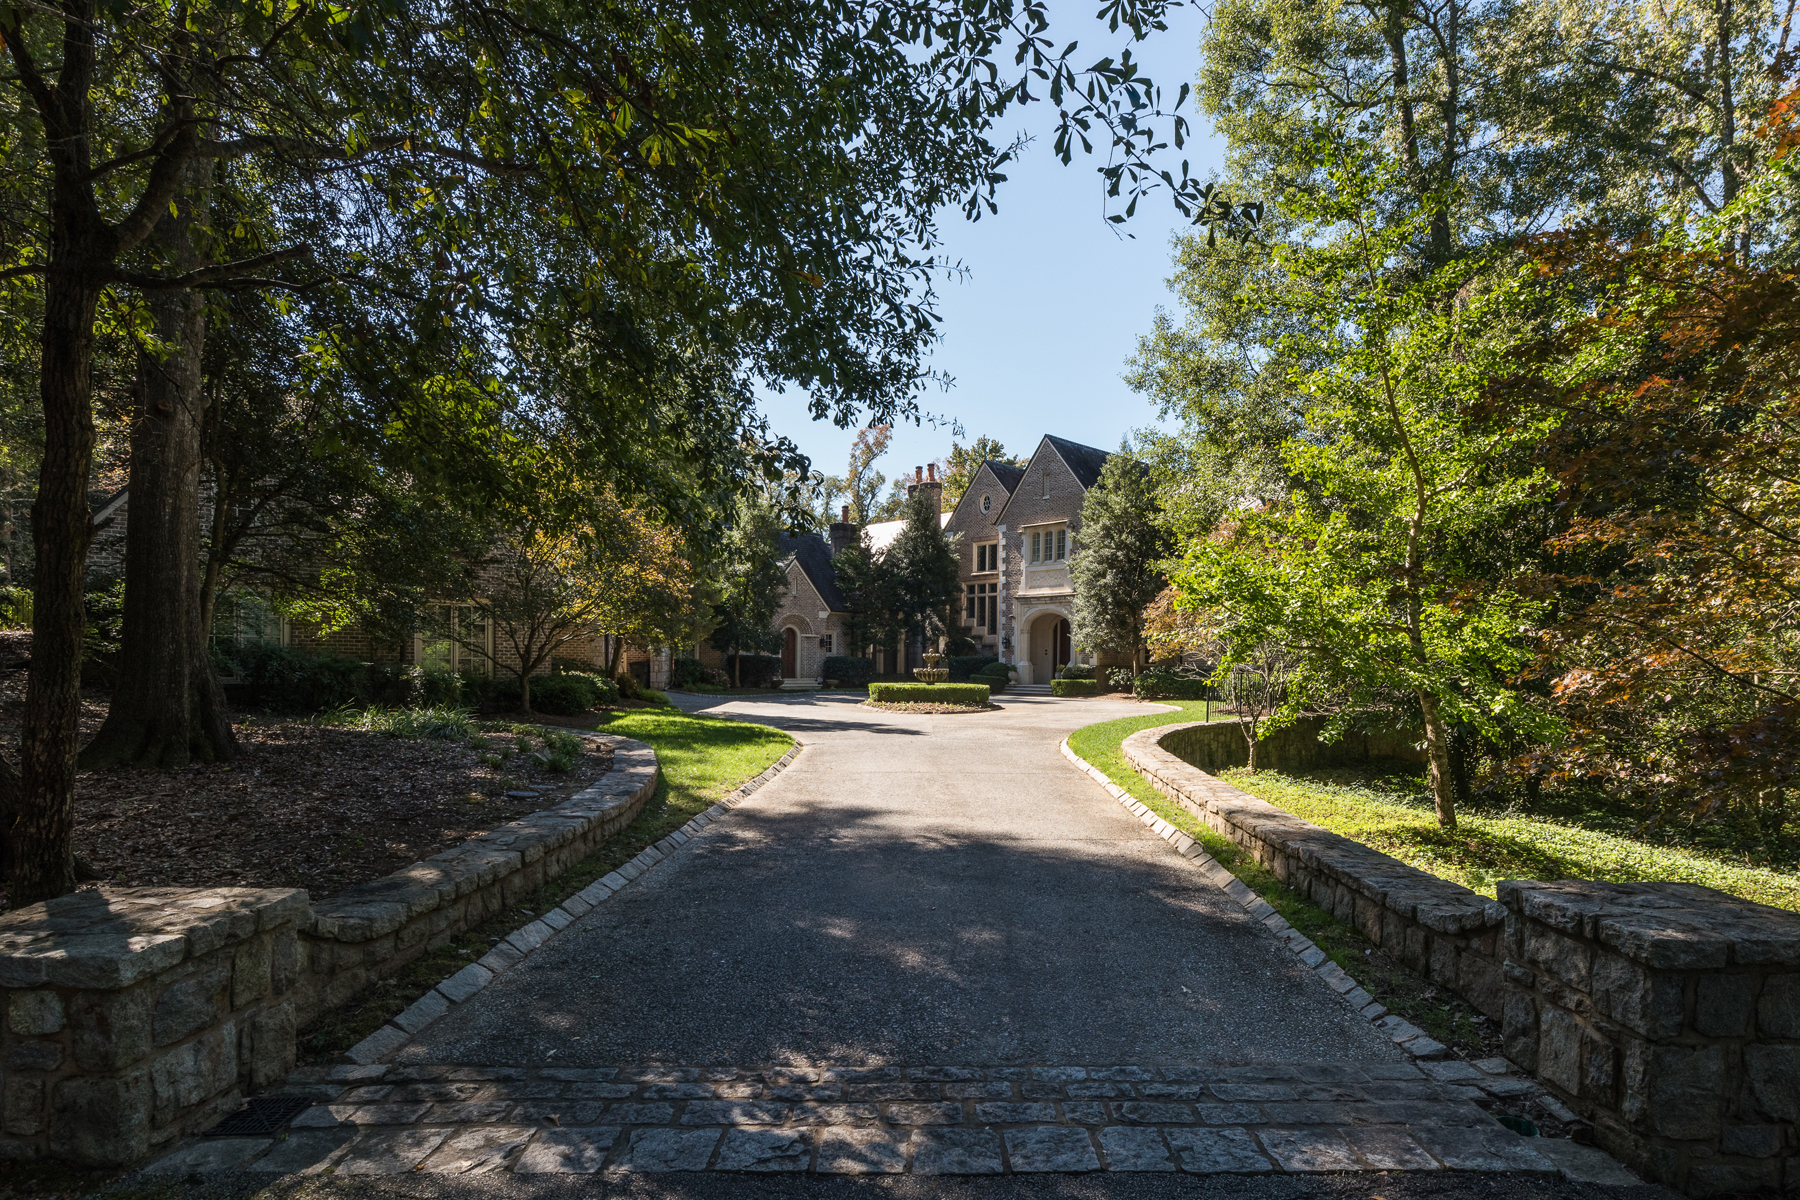 Casa Unifamiliar por un Venta en An Award Winning Tudor In Buckhead 2032 W Paces Ferry Road Atlanta, Georgia 30327 Estados Unidos